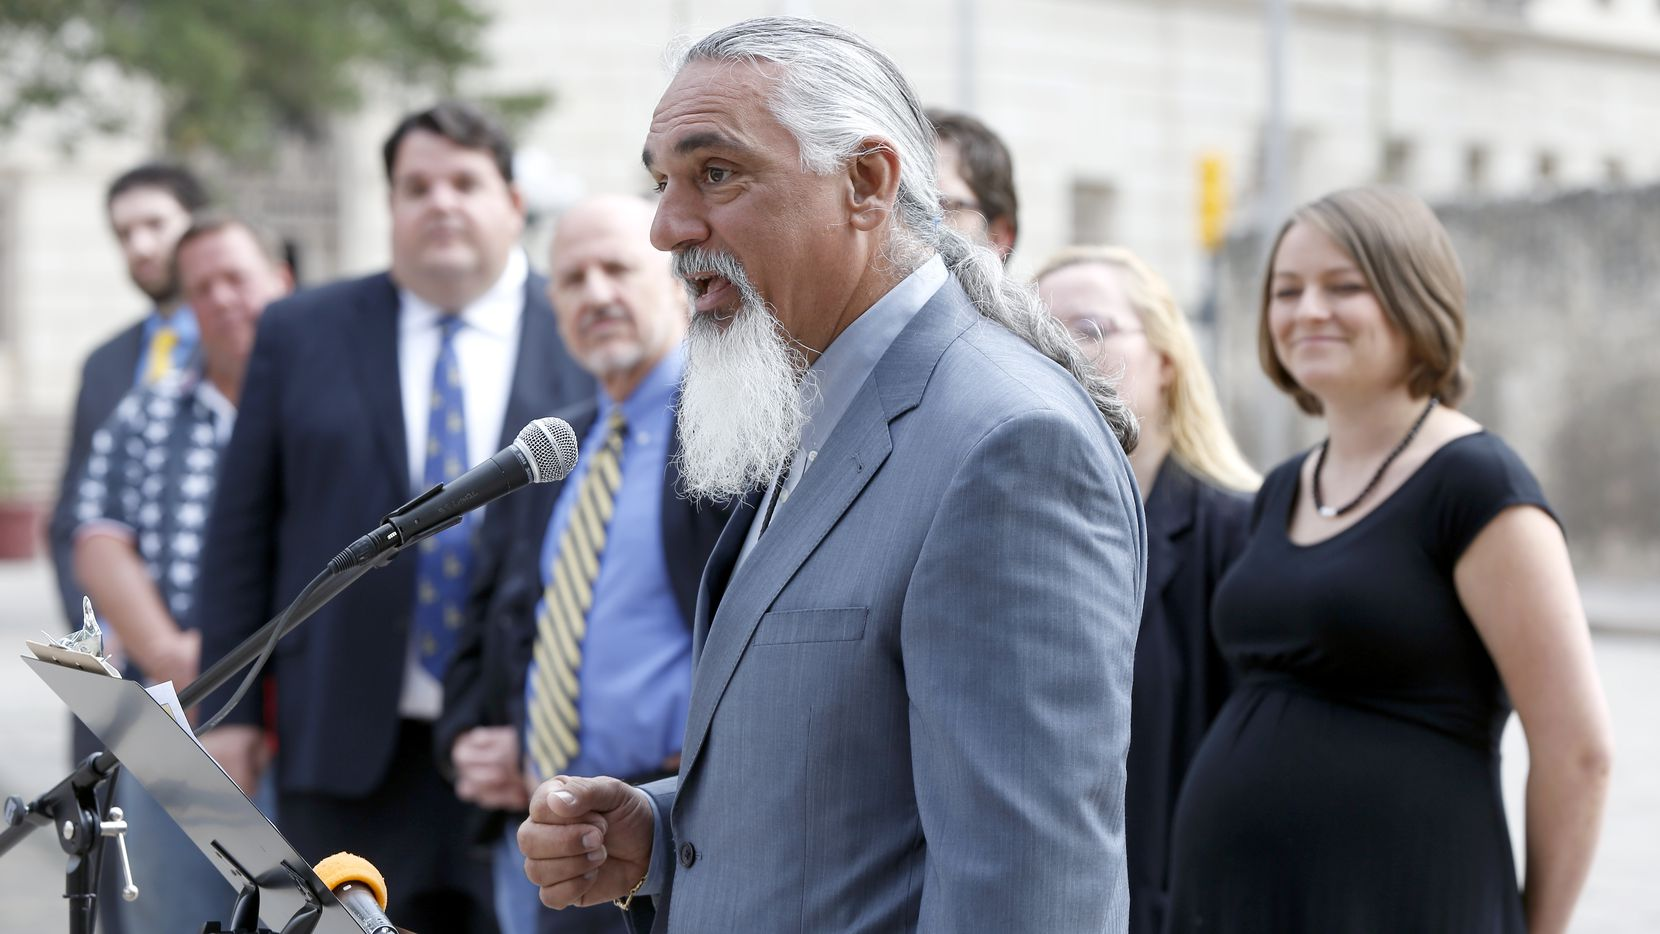 Jamie Balagia, whose trial is underway in Sherman, in which he is accused of shaking down Colombian drug lords, spoke as a Libertarian candidate for Texas attorney general in May 2014 in front of the Alamo.